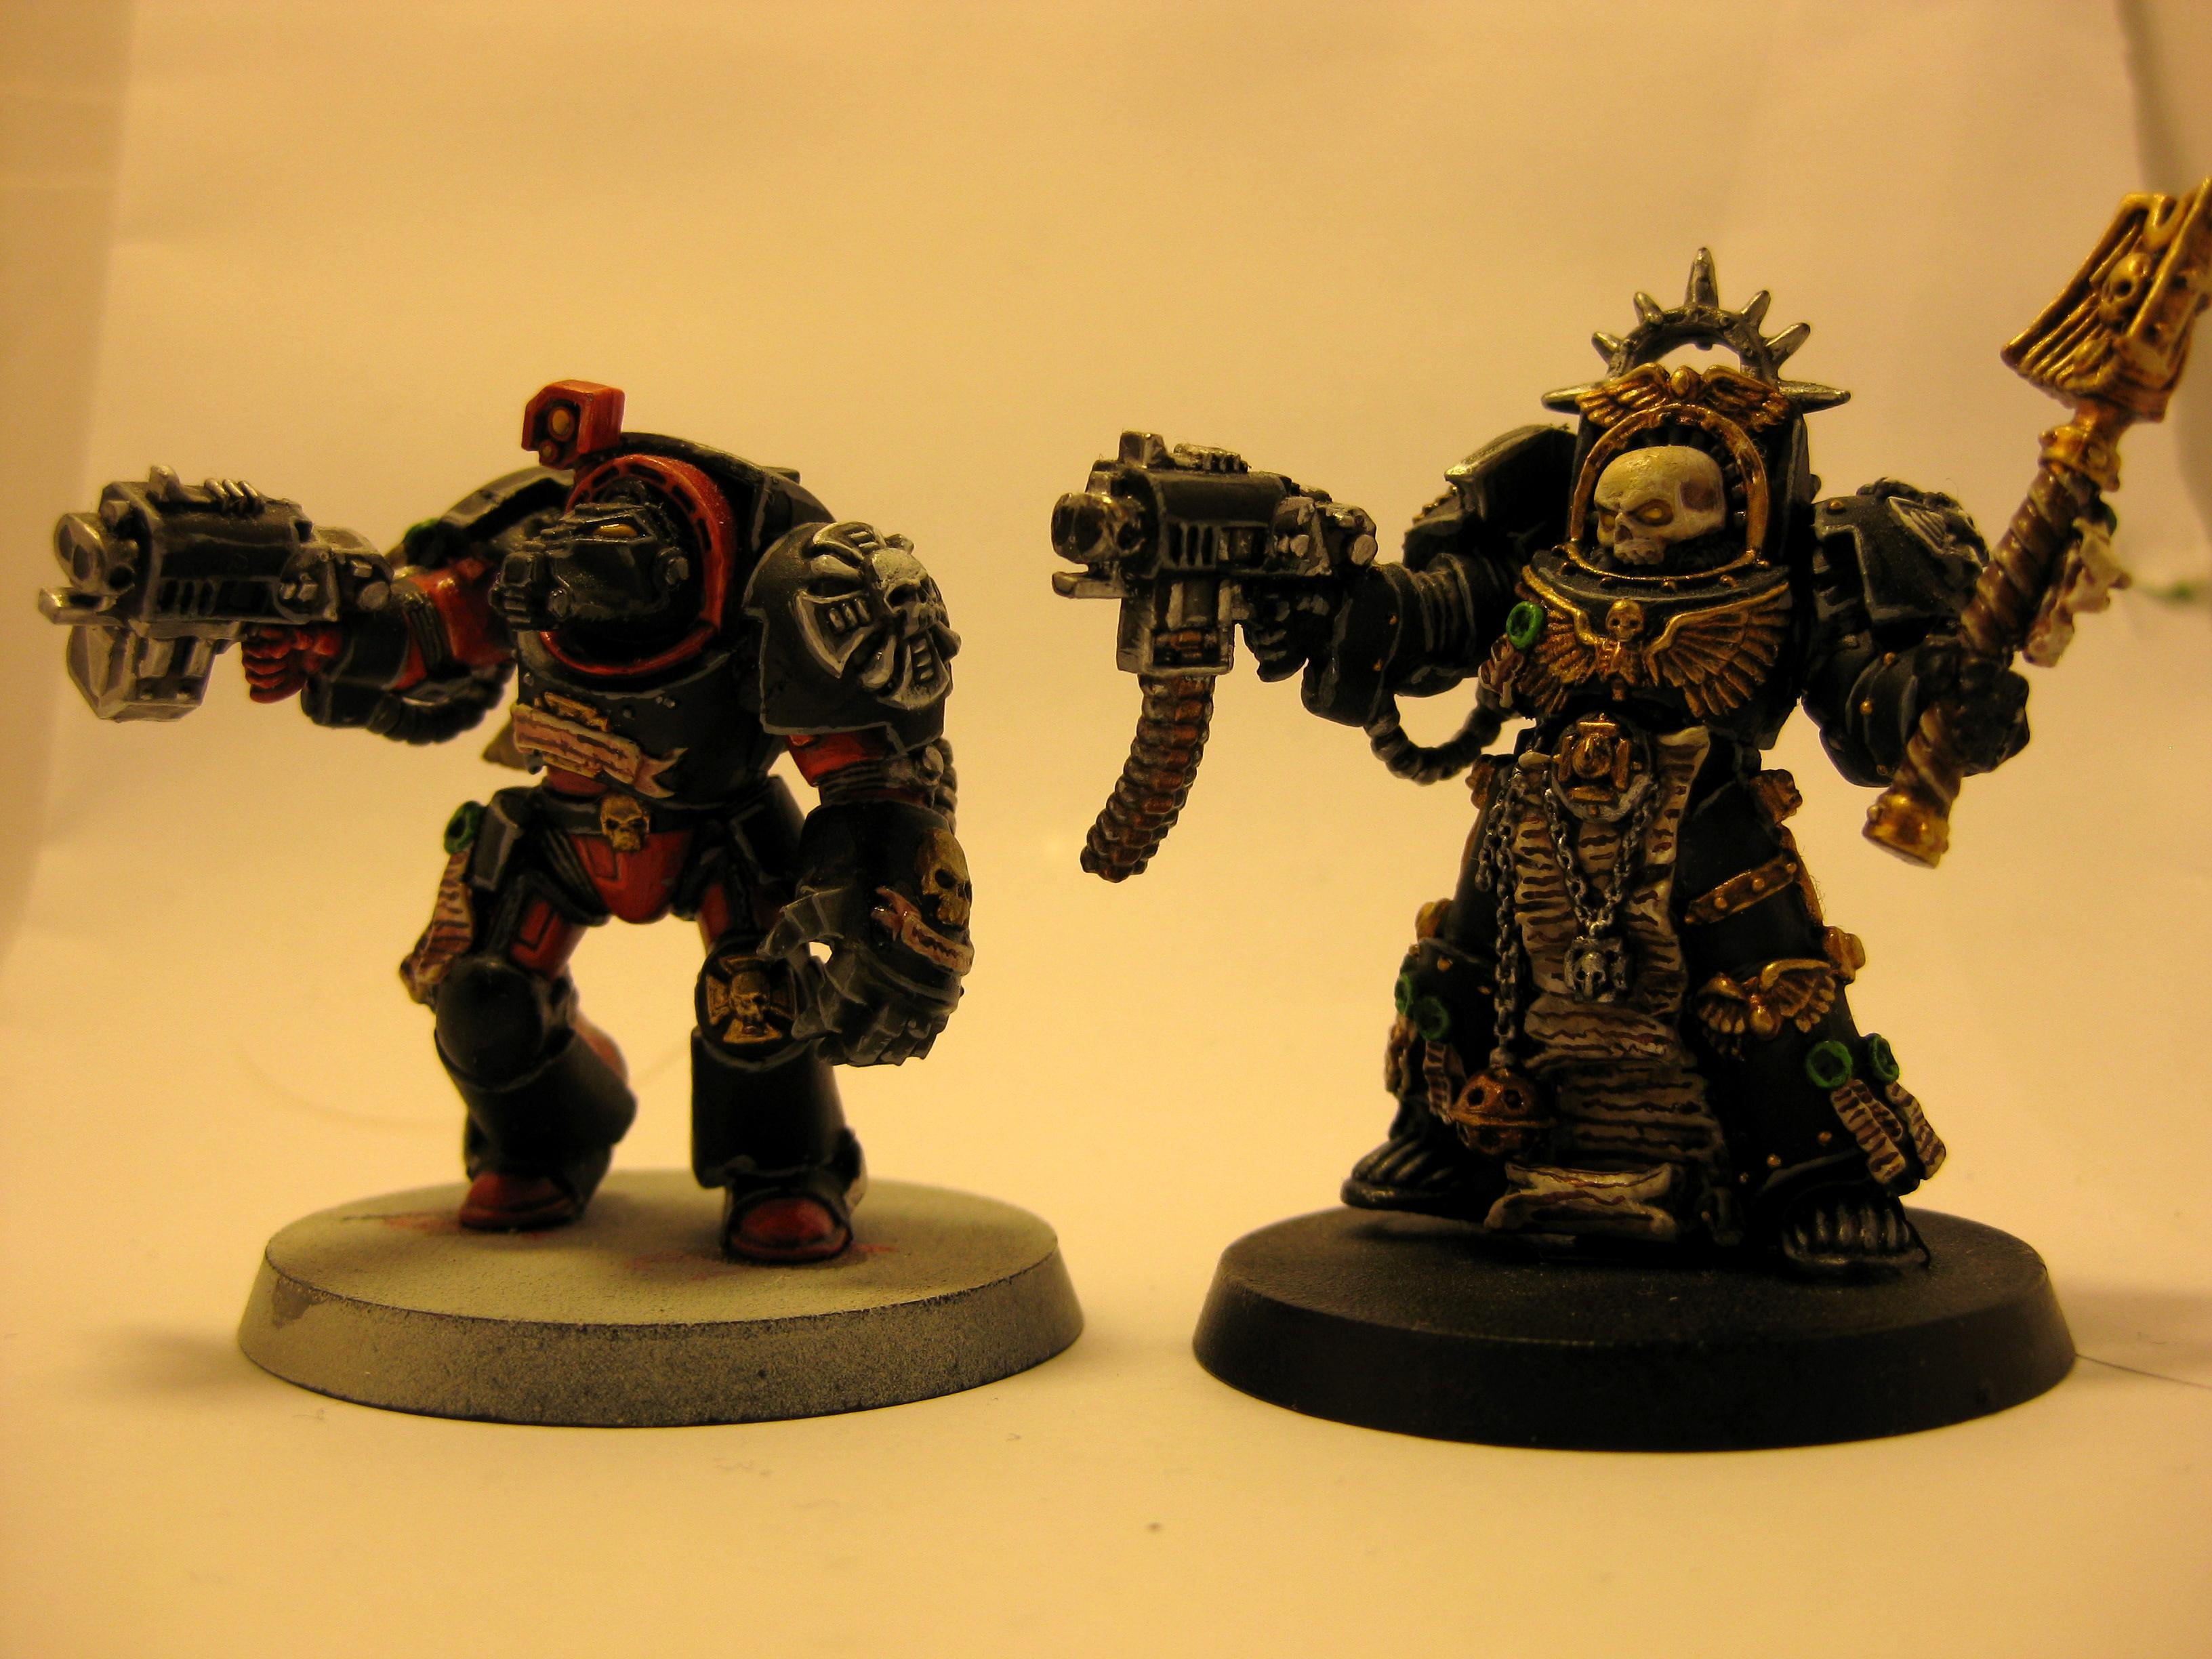 Blood Angels, Chaplain, Flesh Tearer, Terminator Armor, Warhammer 40,000